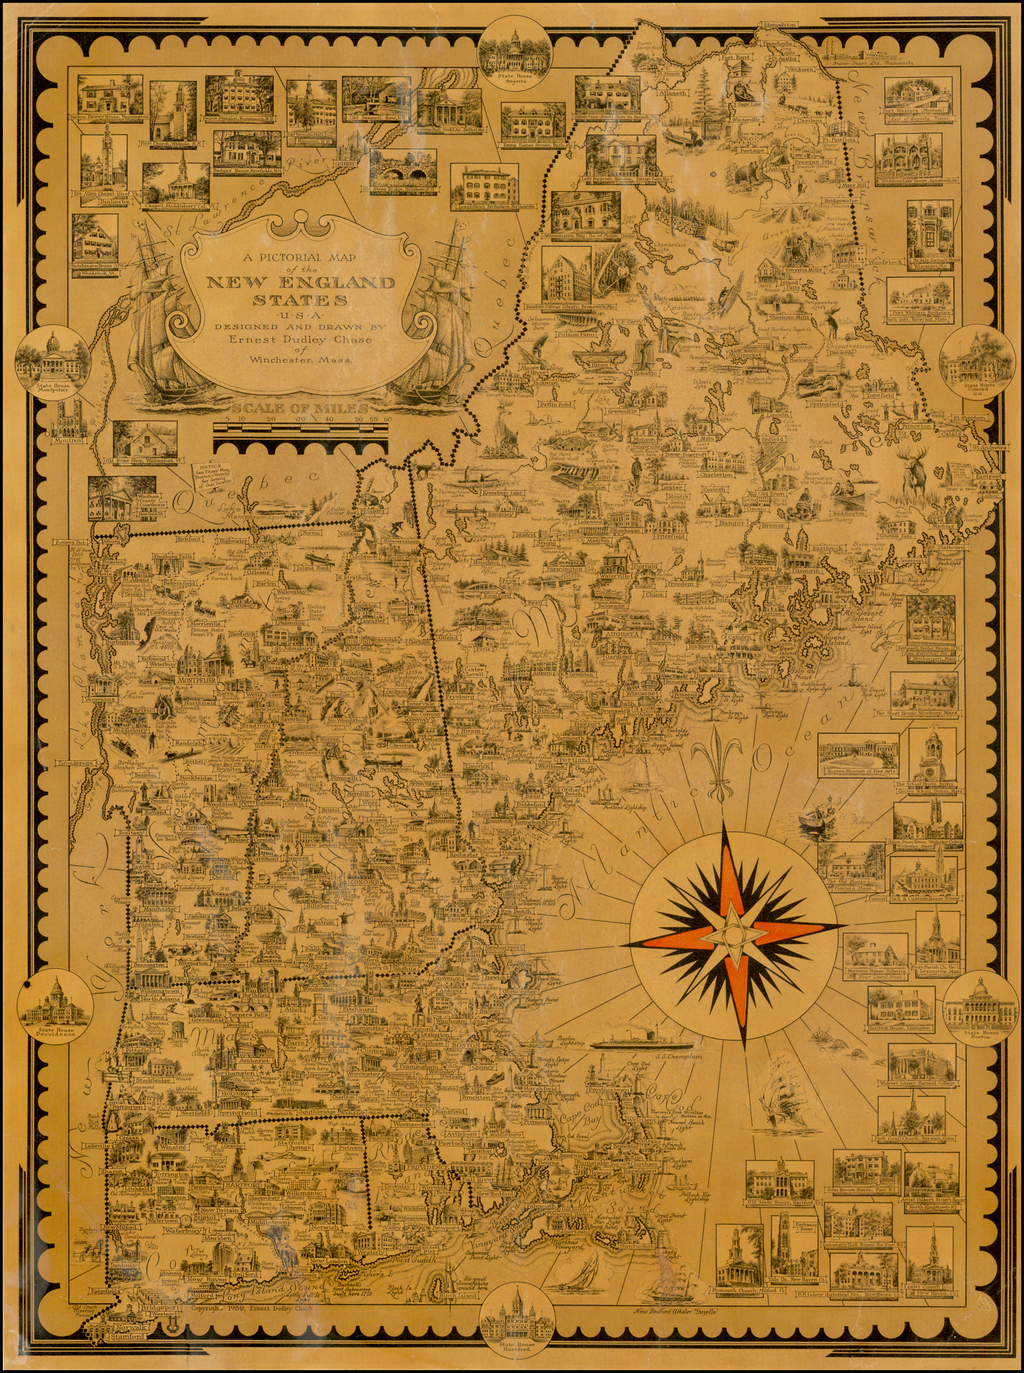 A Pictorial Map of the New England States USA . . .  By Ernest Dudley Chase